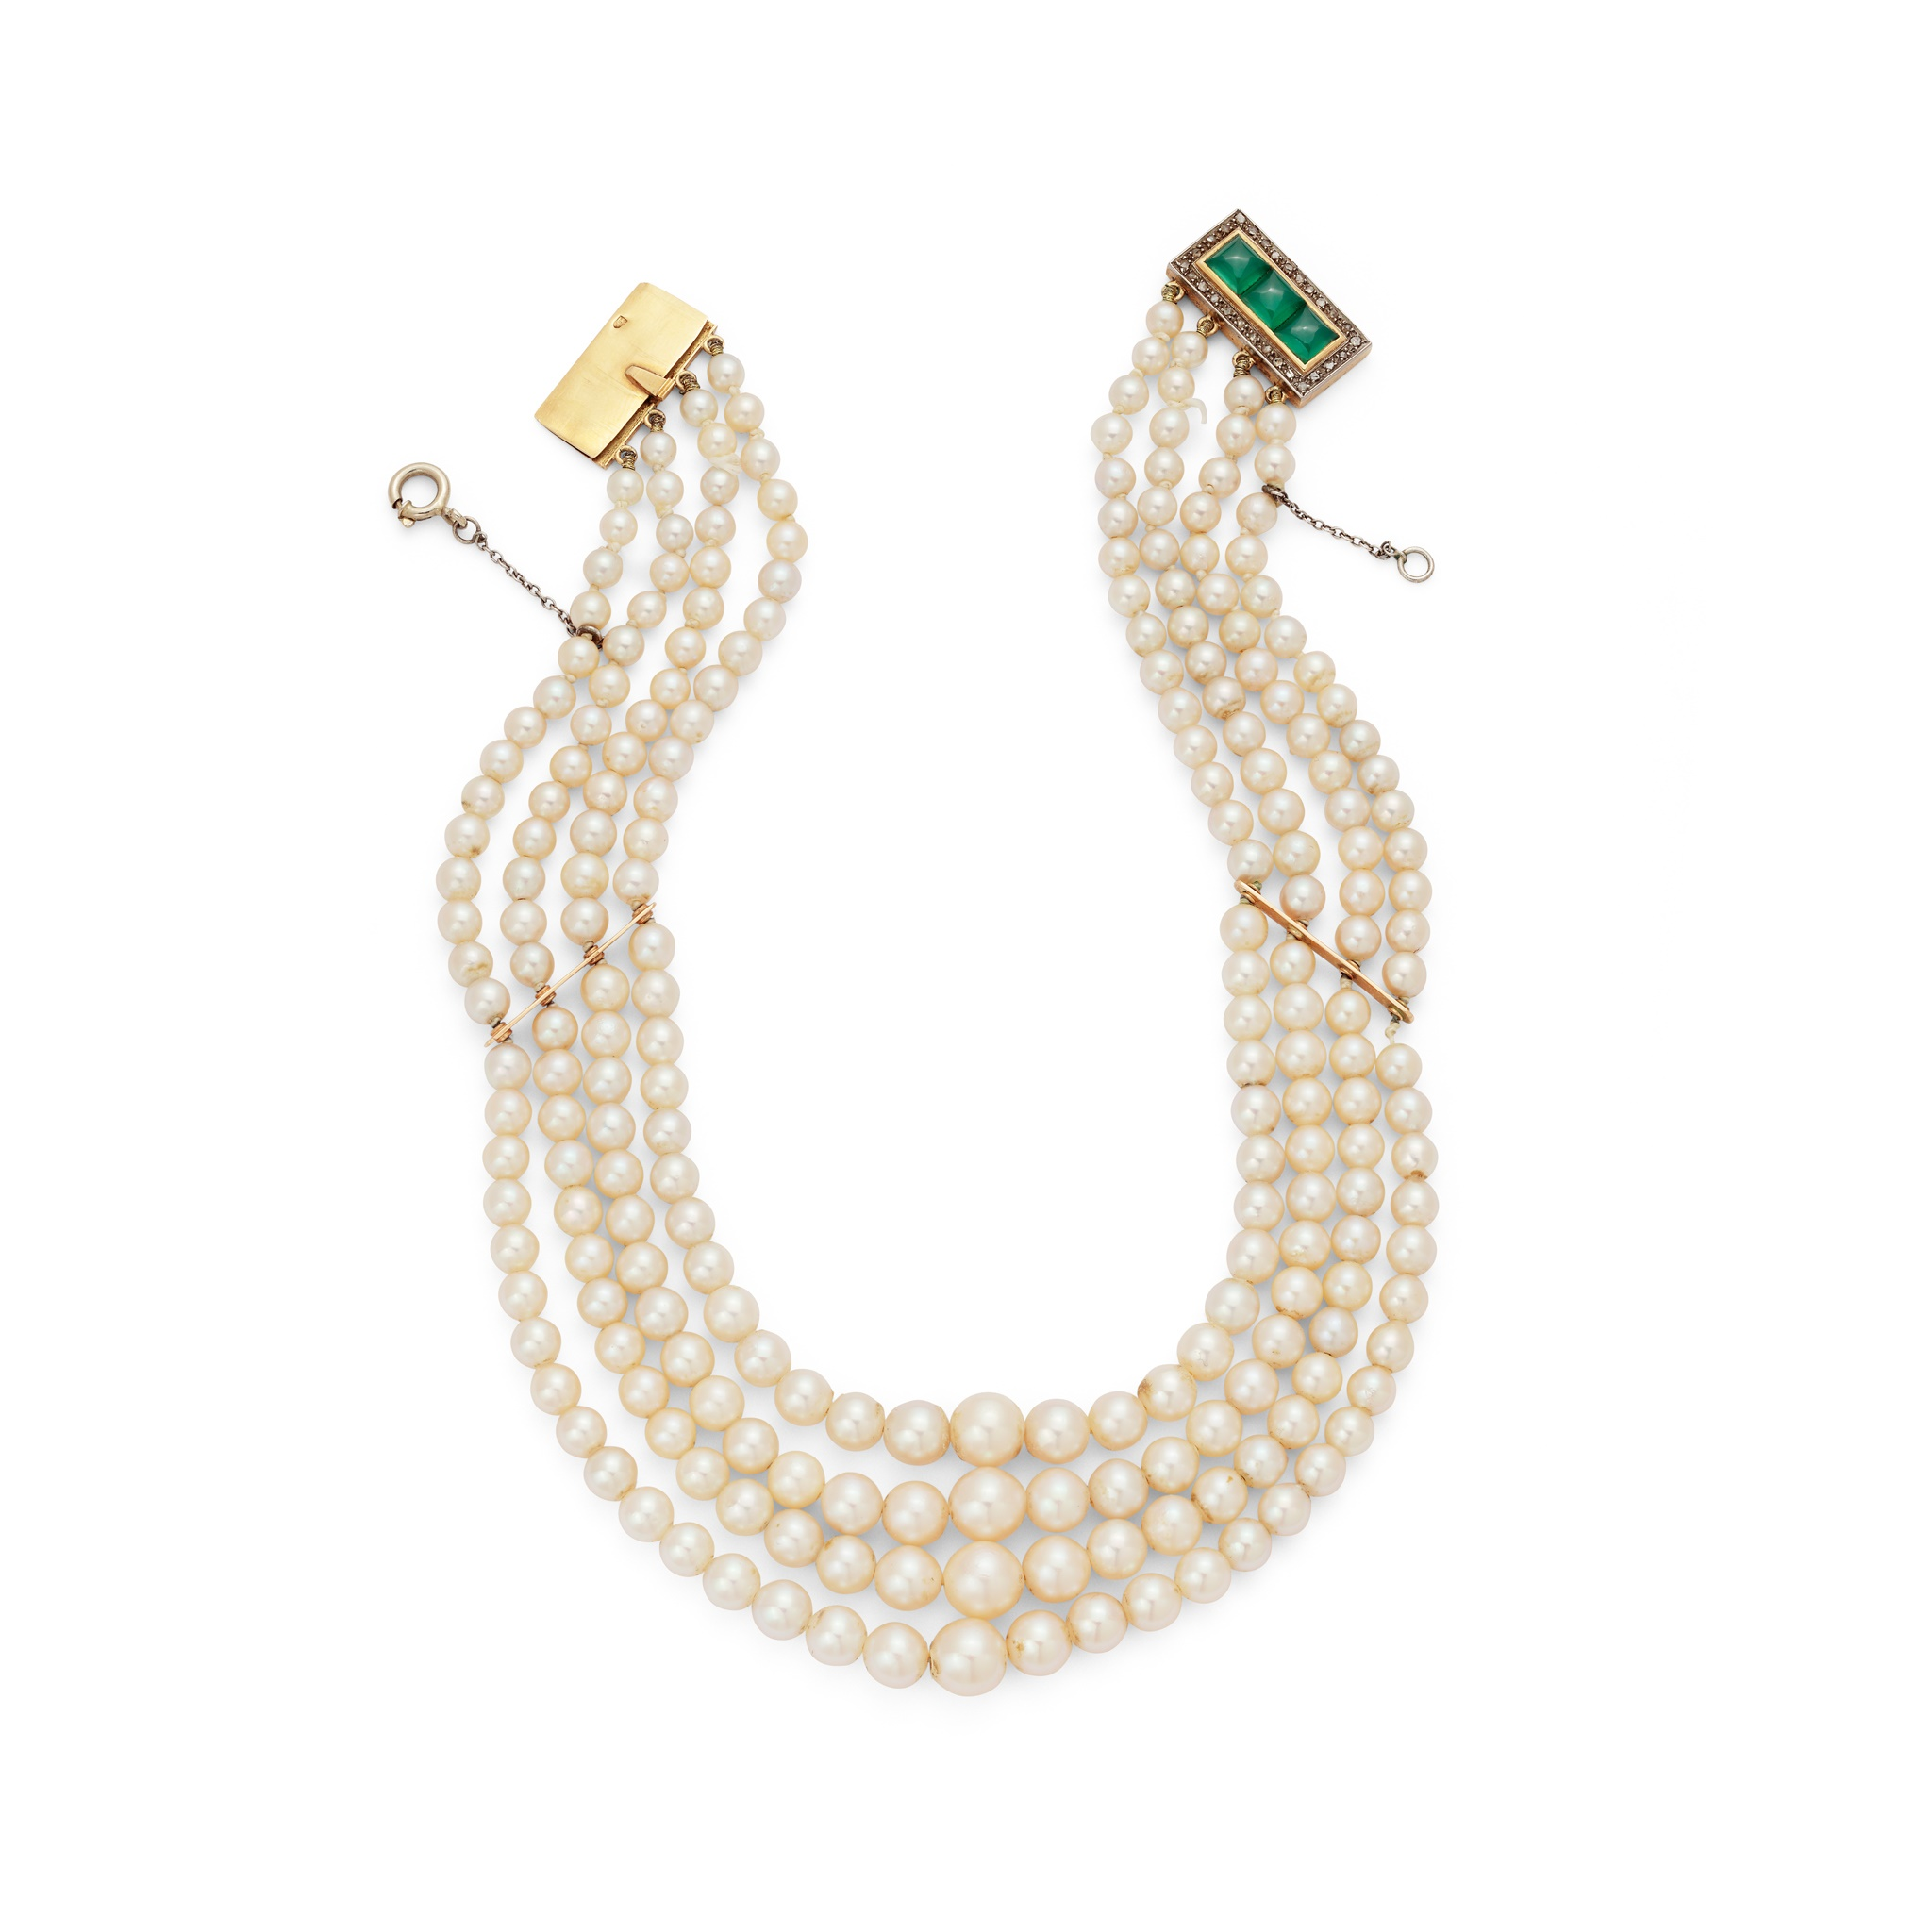 An early 20th century cultured pearl choker Composed of four graduated strands of 3.75- 7.46mm